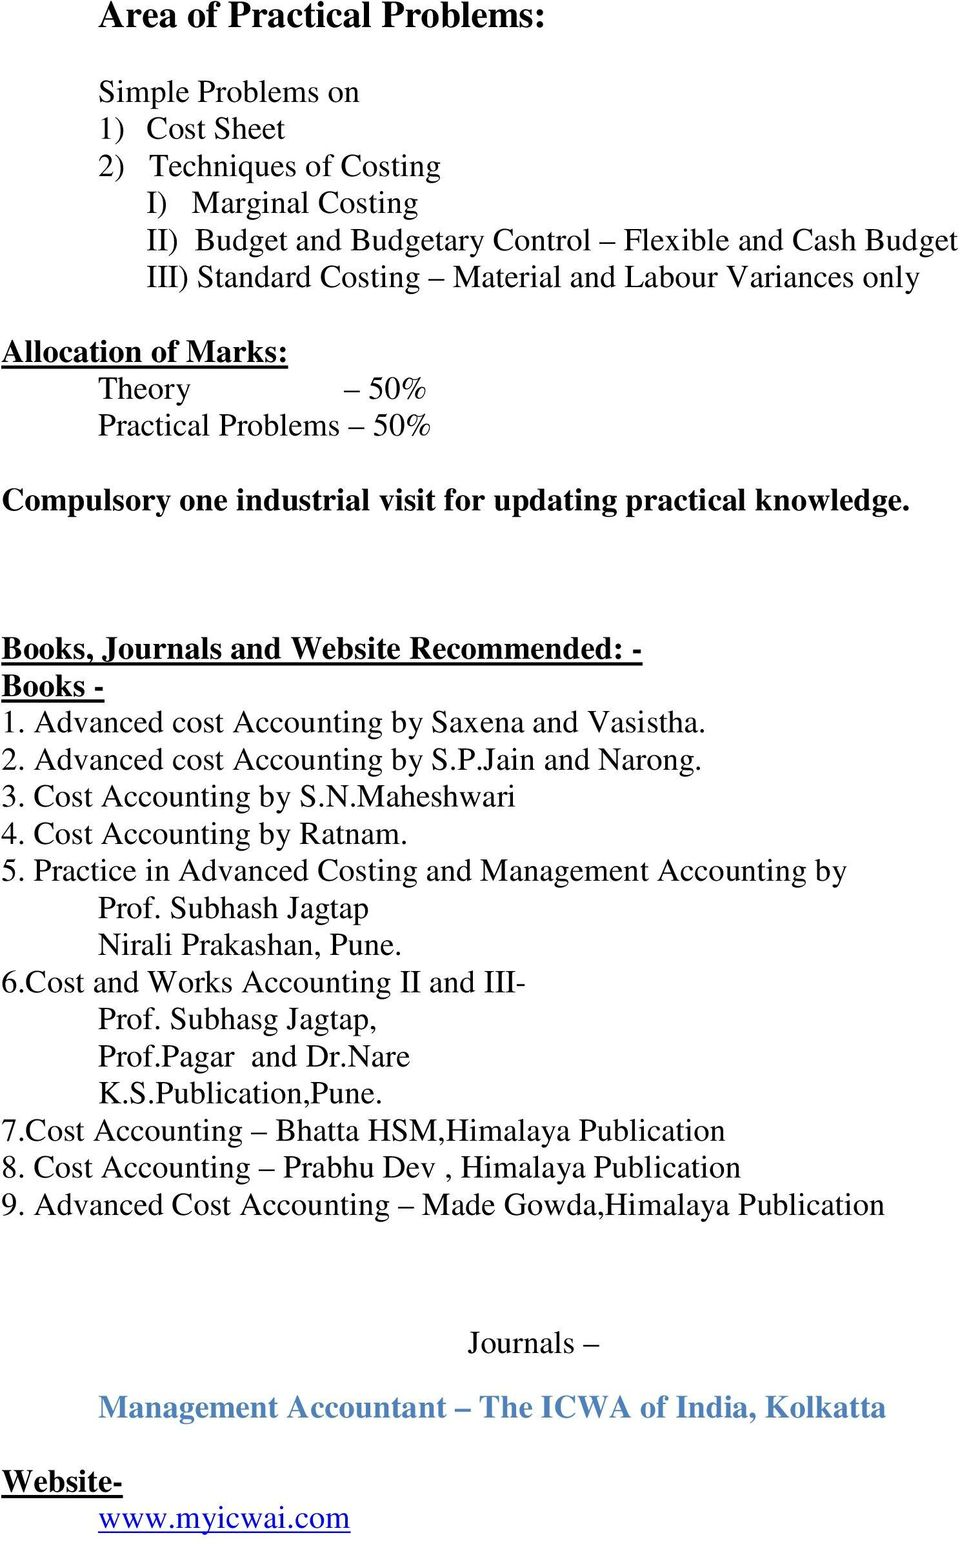 UNIVERSITY OF PUNE COURSE STRUCTURE FOR BACHELOR OF BUSINESS